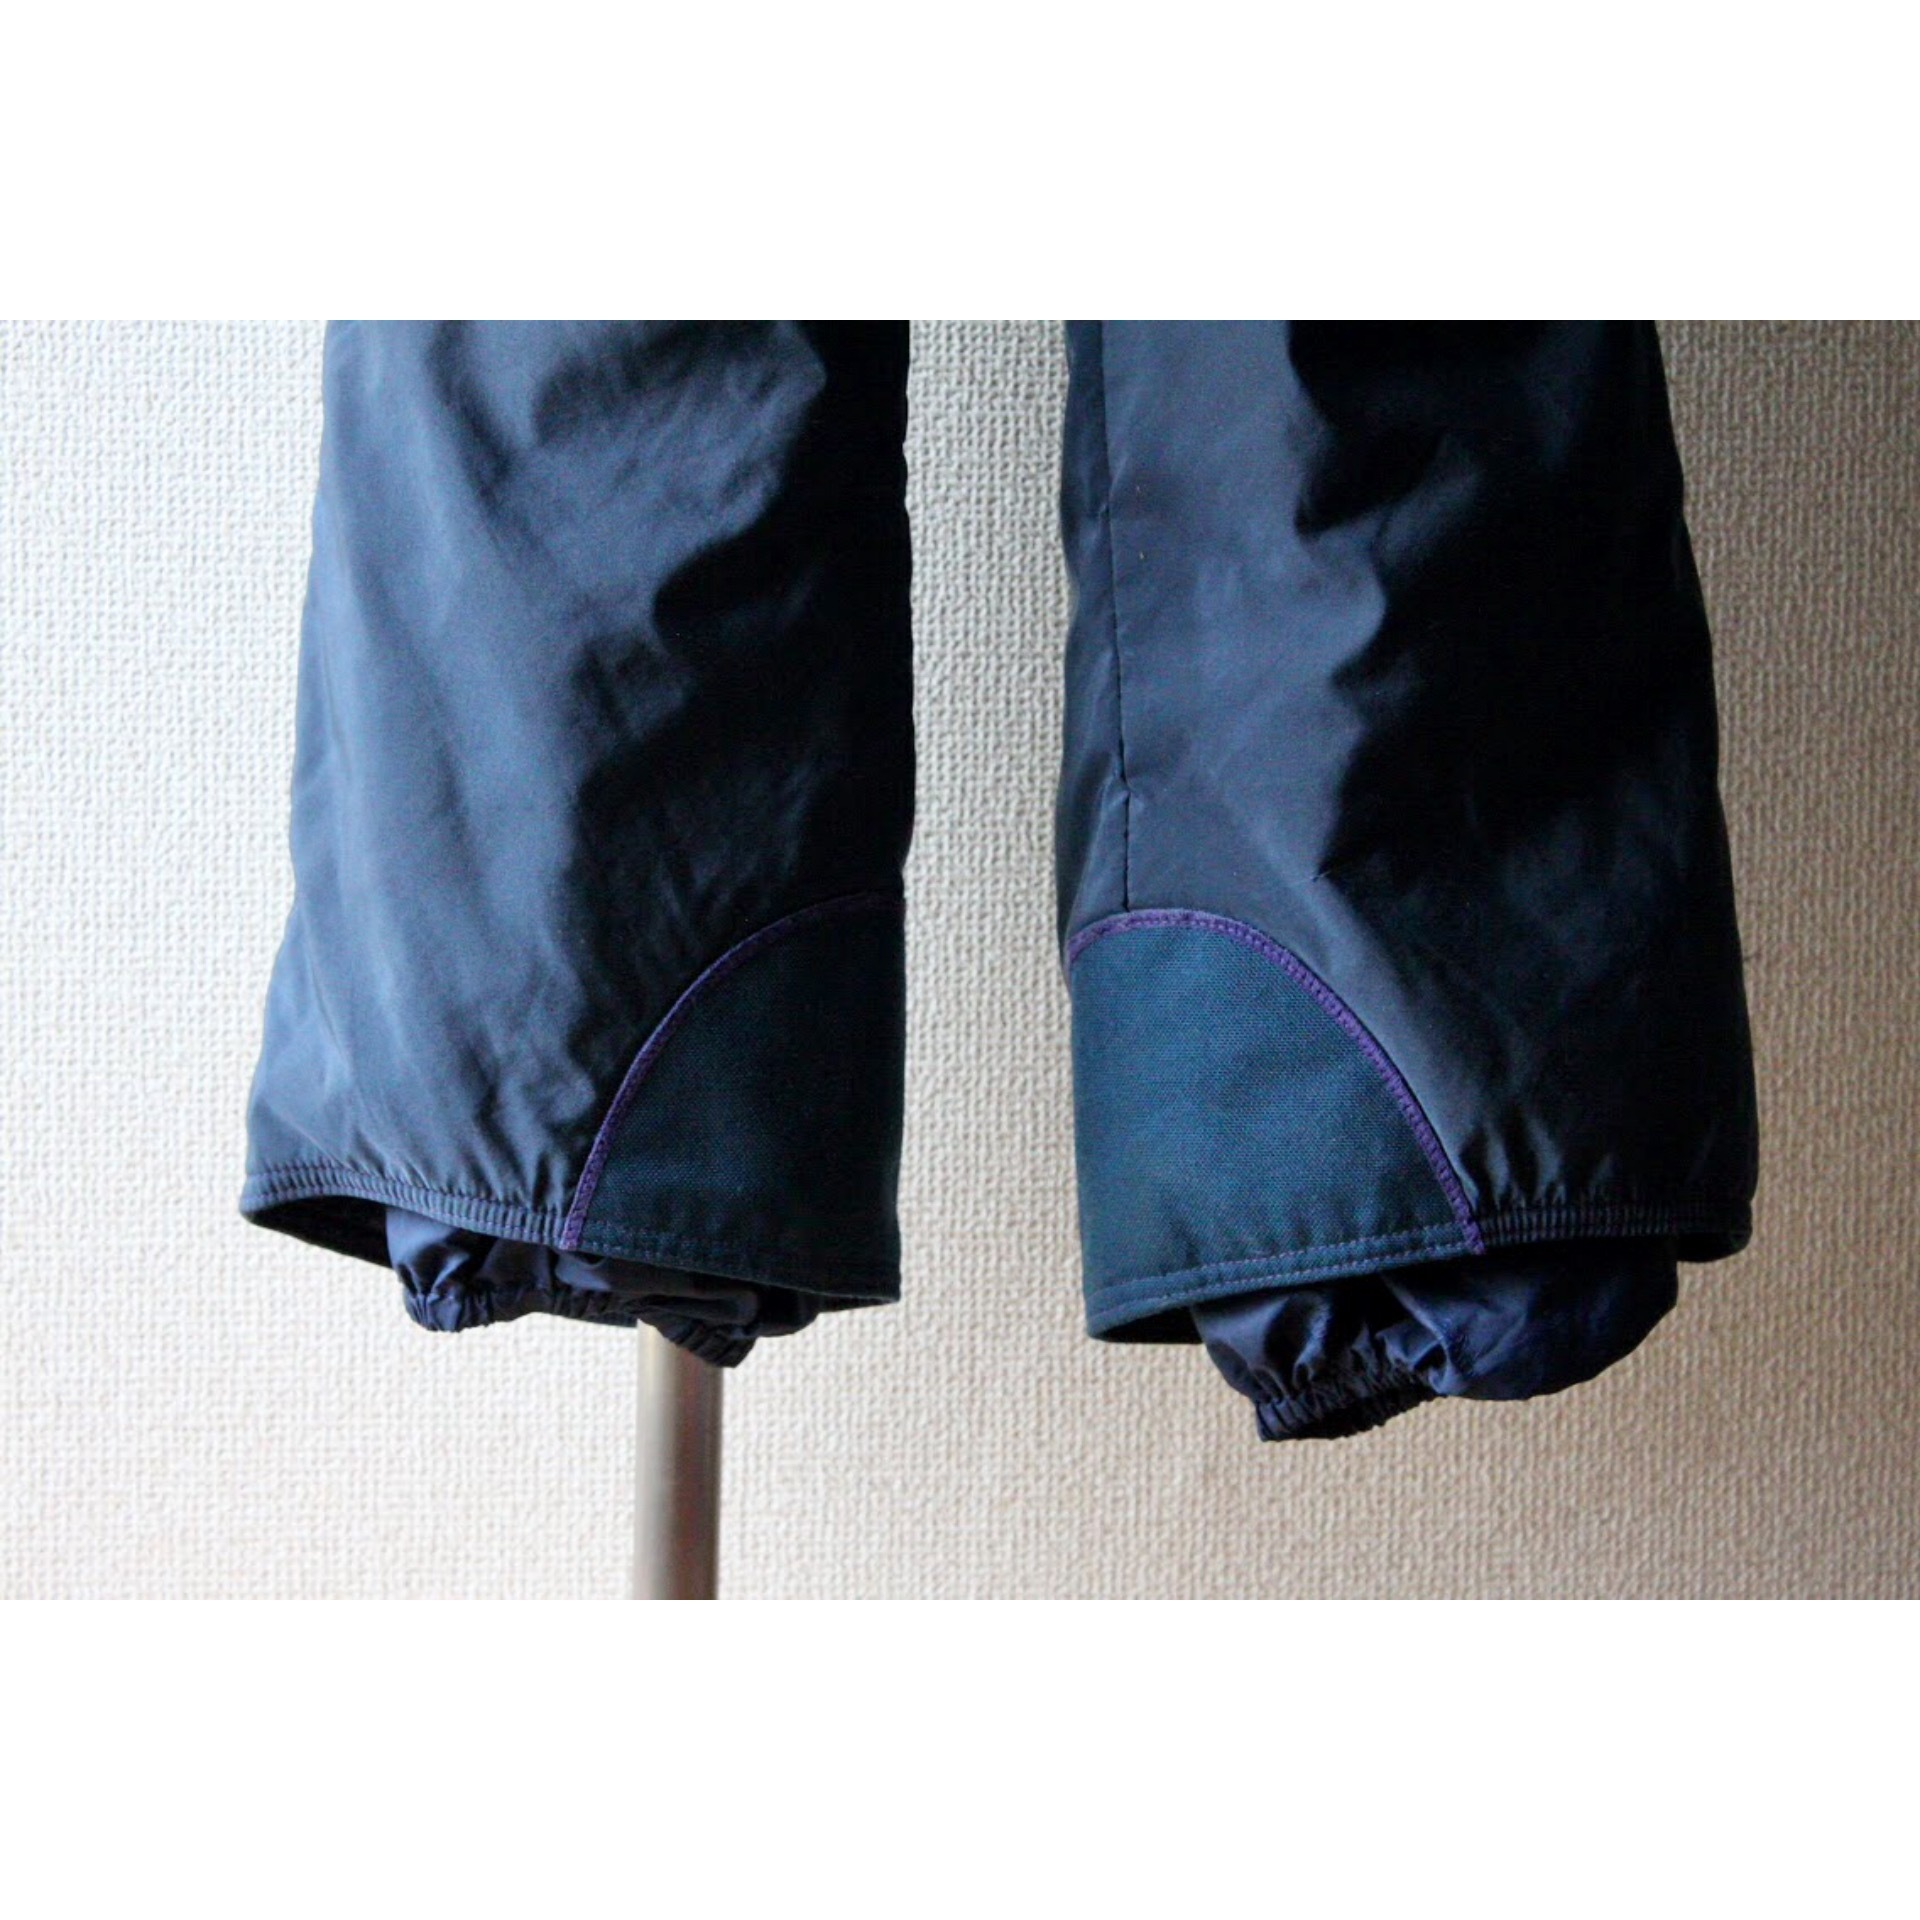 Vintage ski pants by The North Face